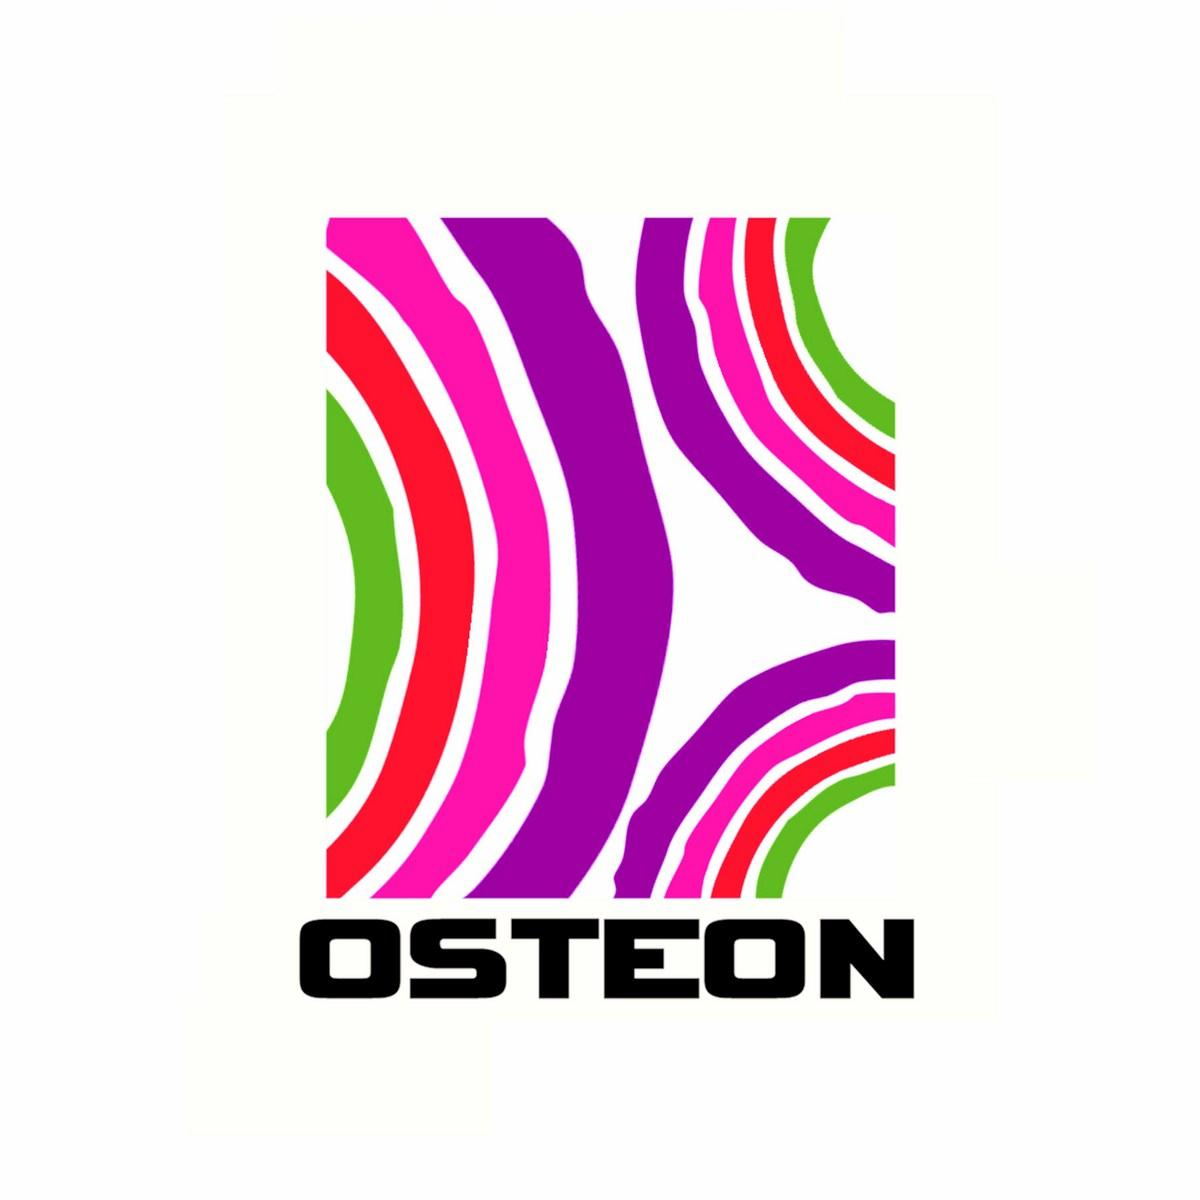 Osteon Fracture and Orthopaedic Clinic